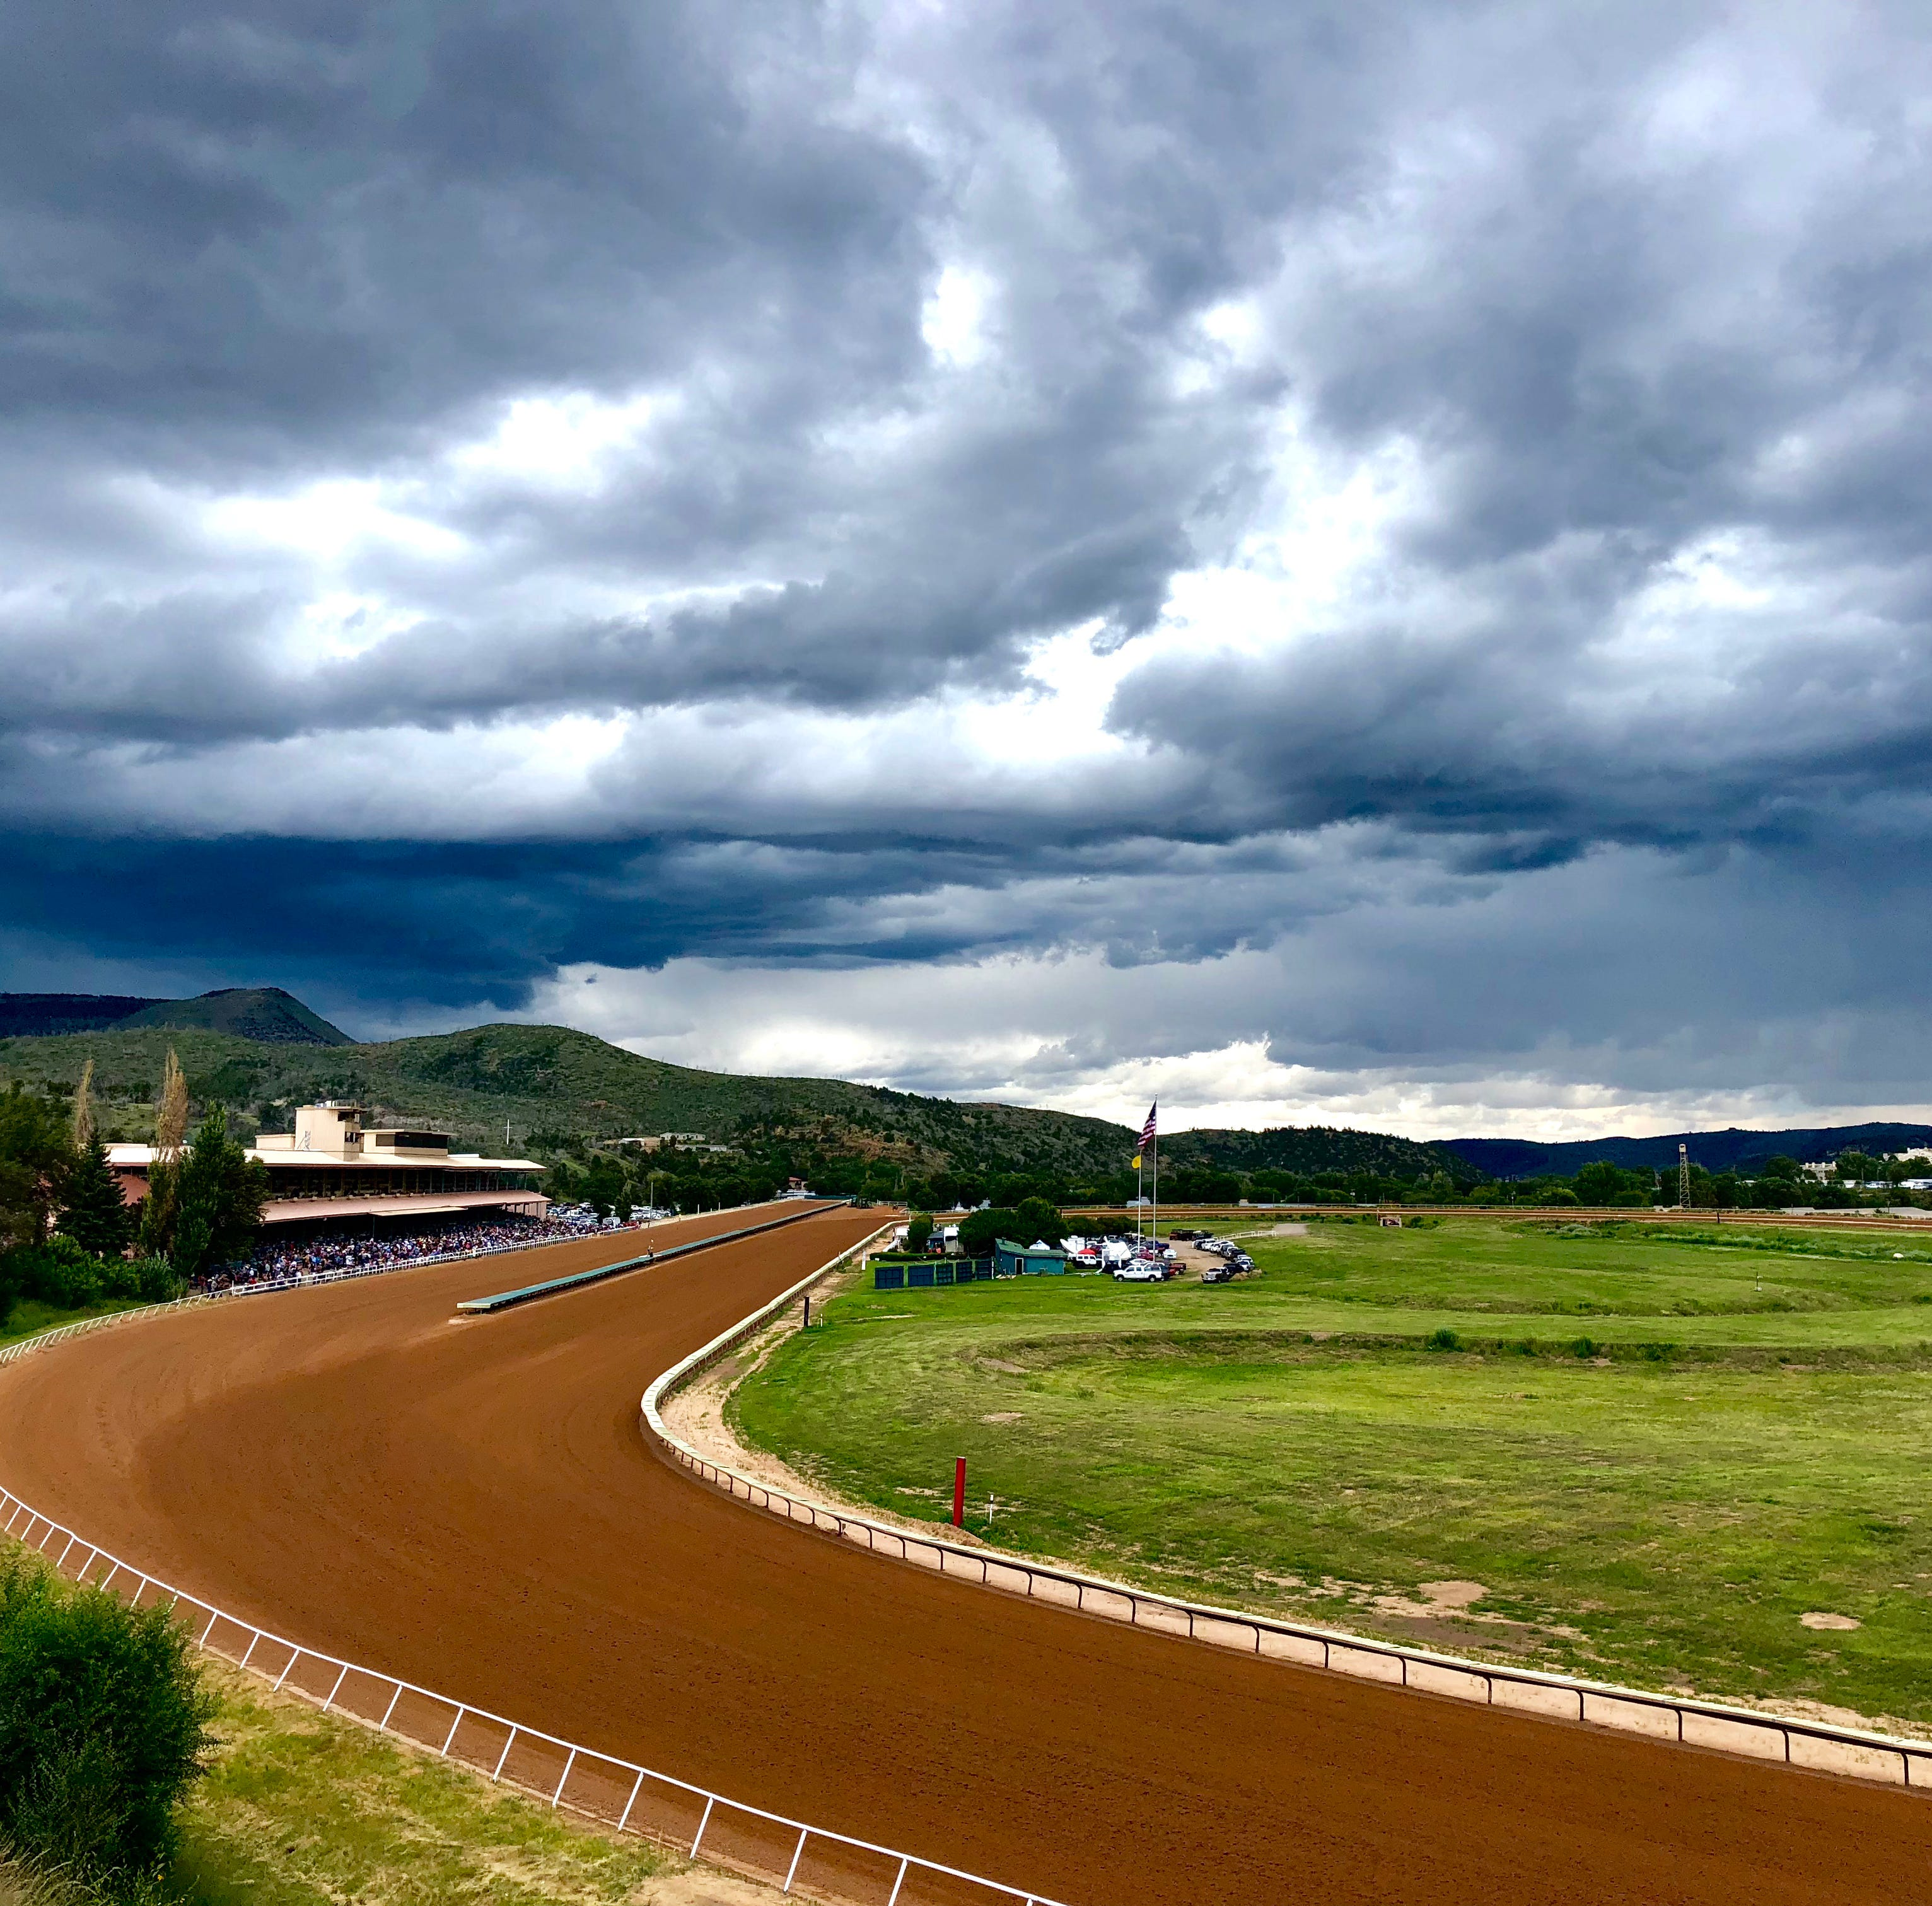 Ruidoso Downs Race Track: Live updates from the Futurity trials